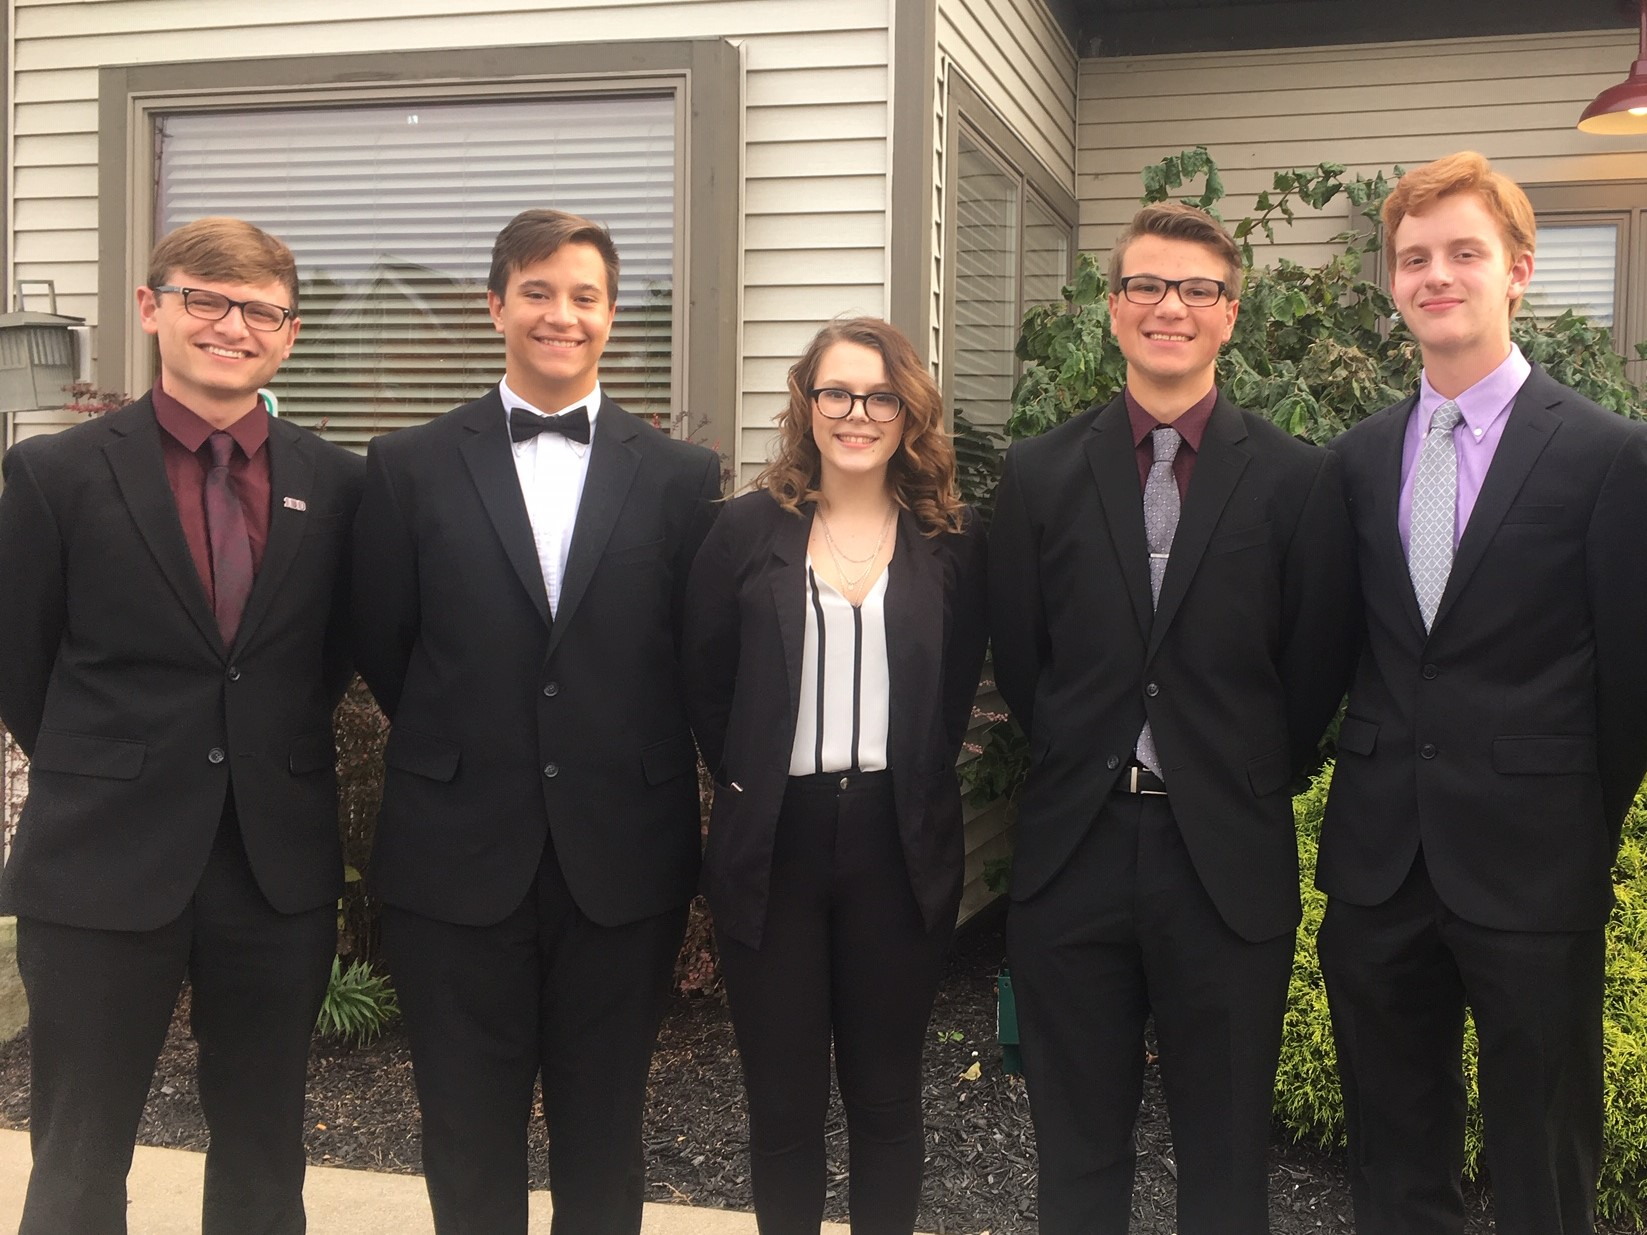 Mr. Clones, James Valentin, Megan Frye, Matthew Wellton, SAm Holter